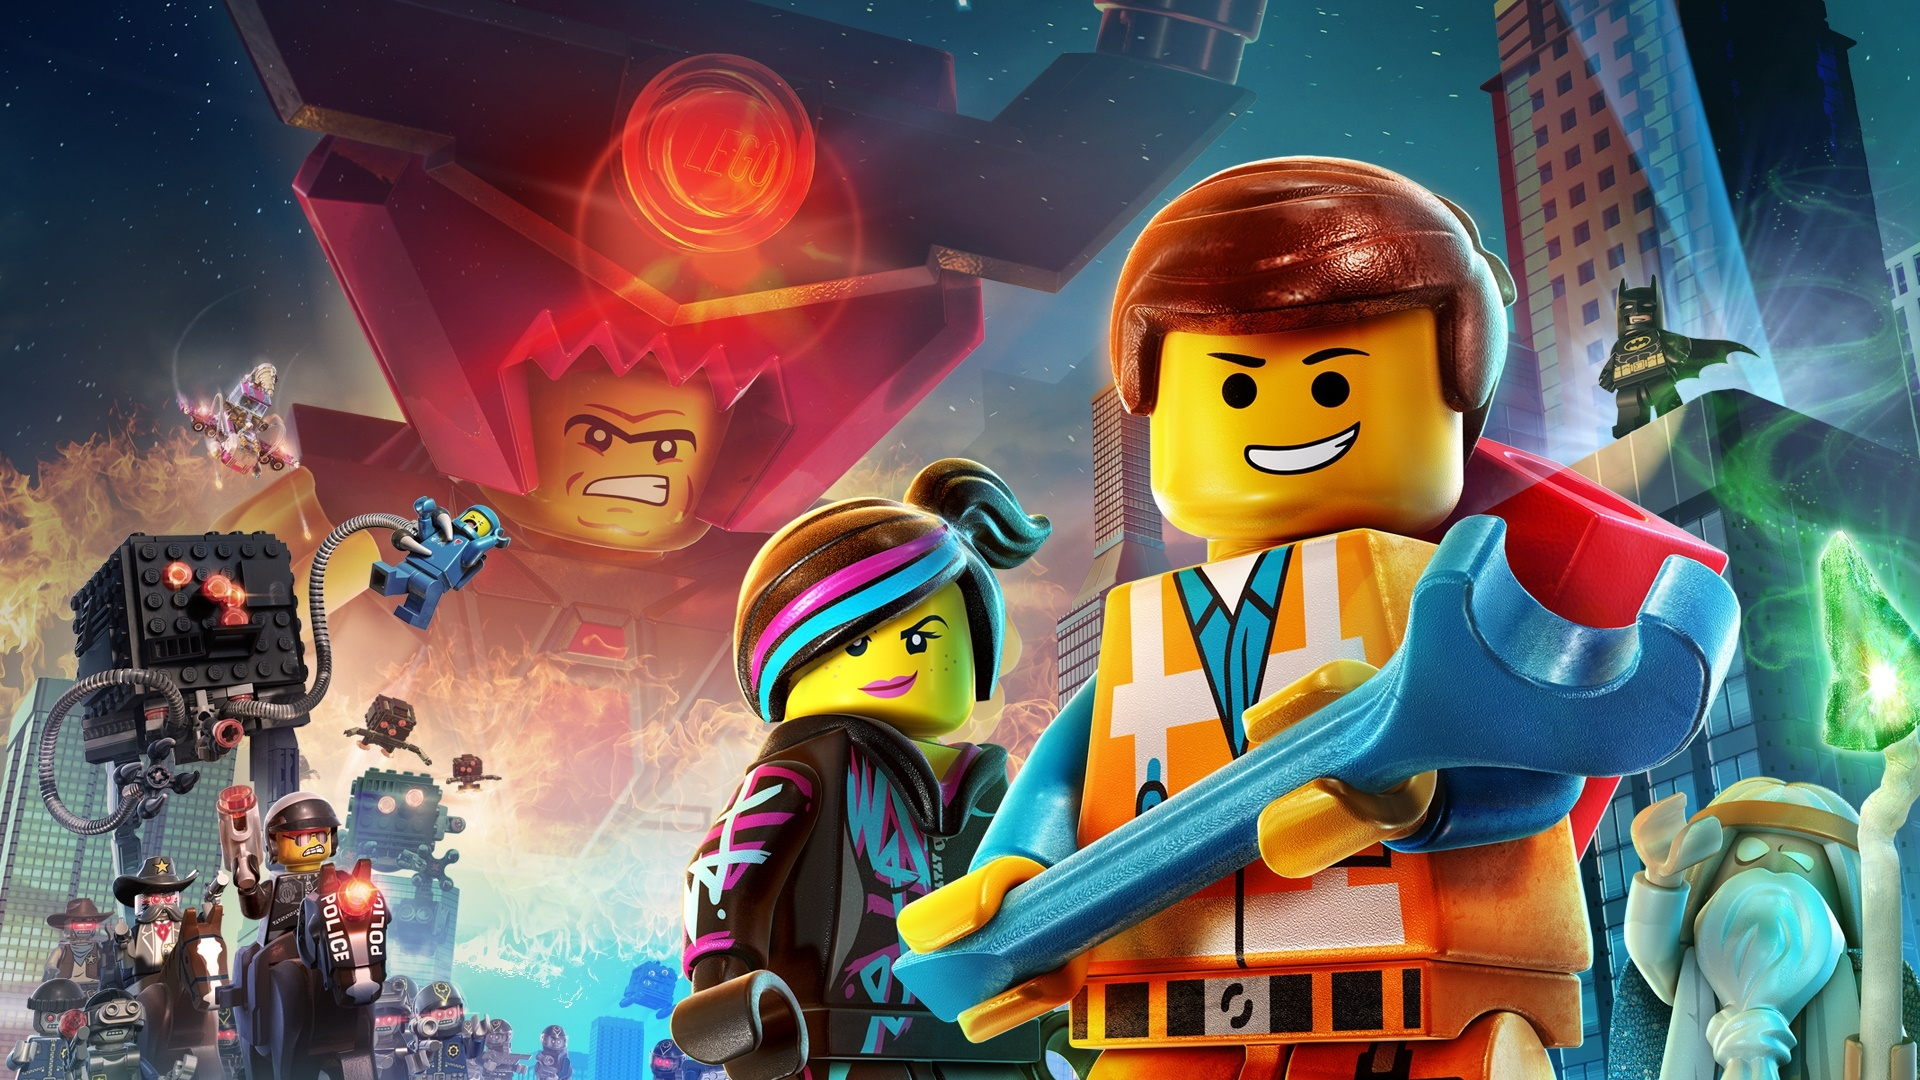 Movie Wallpapers Desktop Backgrounds The Lego Movie HD Movie 1920x1080